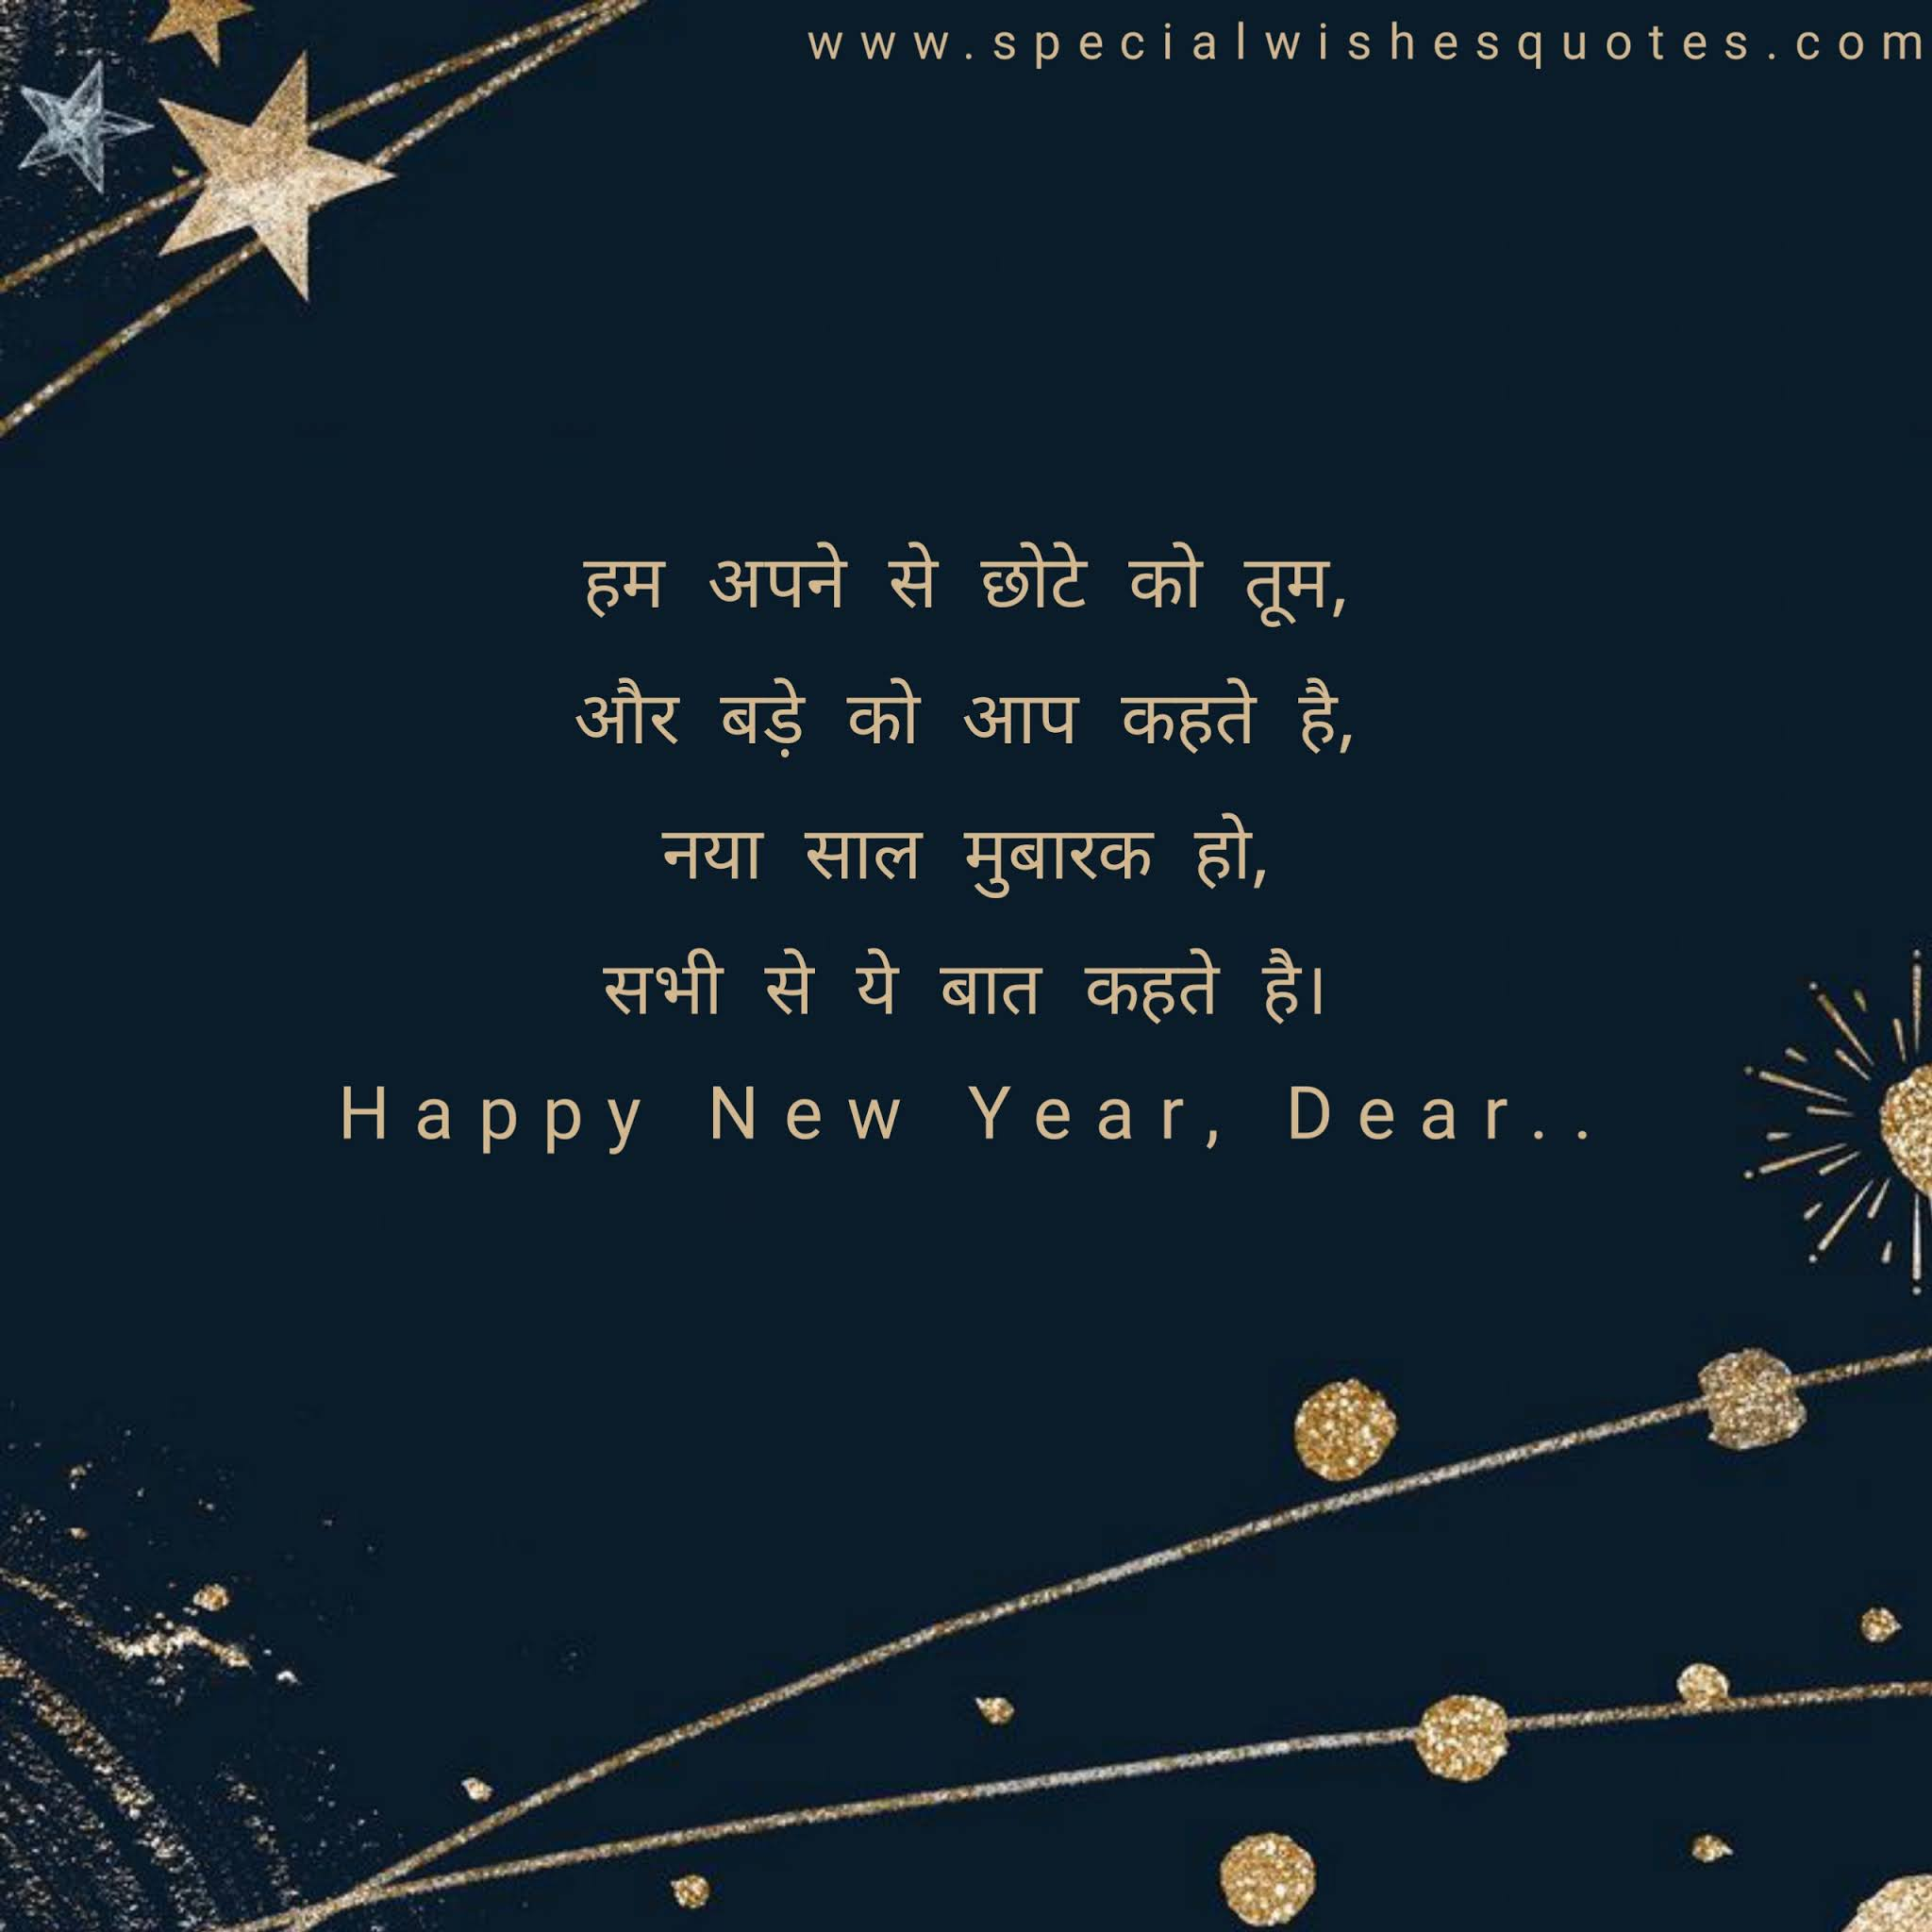 Happy New Year Shayari in Hindi for Friends and Family,